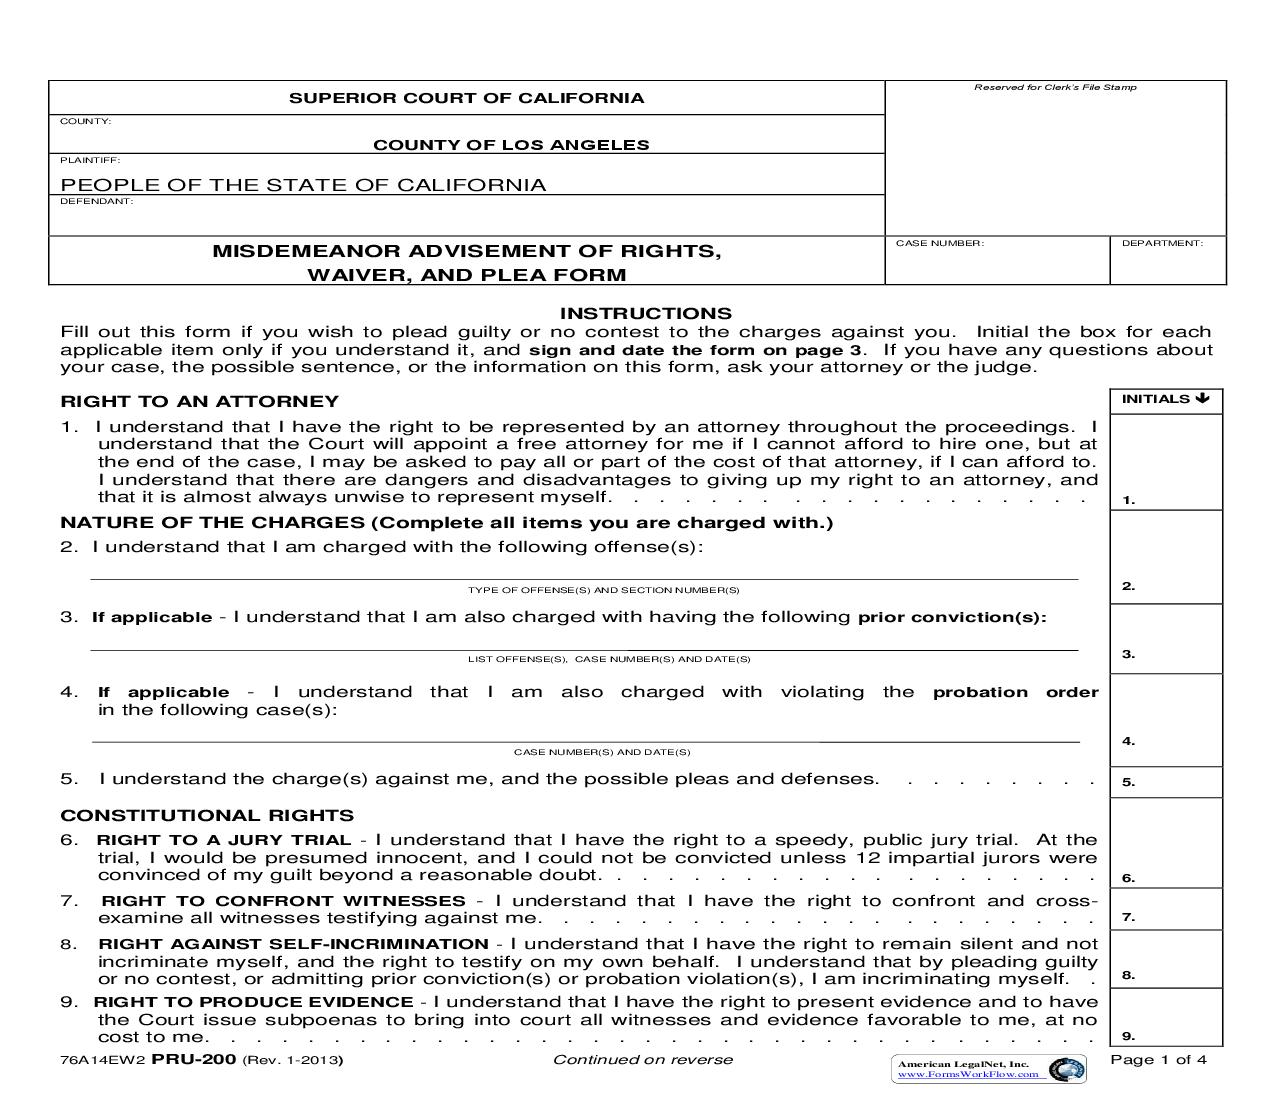 Misdemeanor Advisement Of Rights Waiver And Plea Form (Los Angeles) {PRU-200}   Pdf Fpdf Doc Docx   California